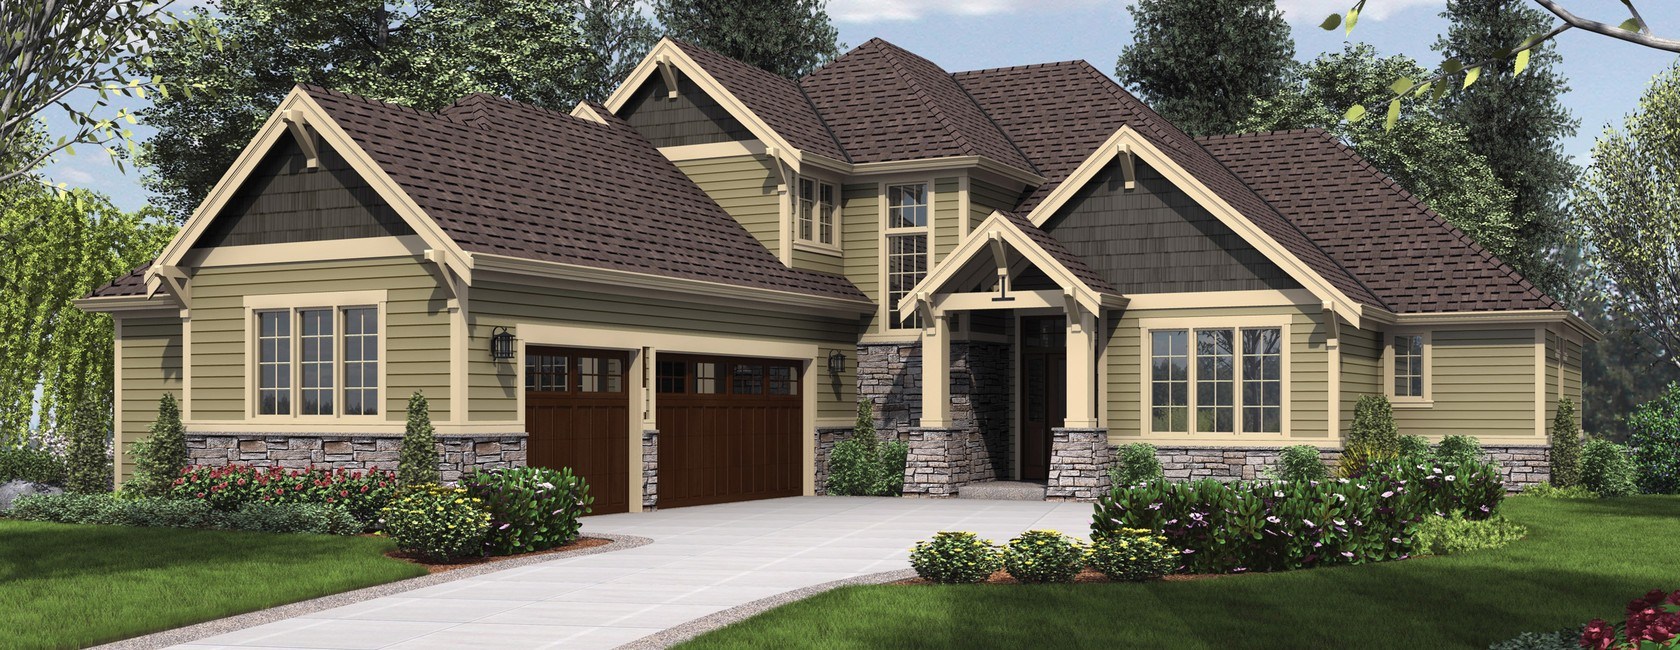 The vidabelo a multigenerational design house plan of Multi generational home plans